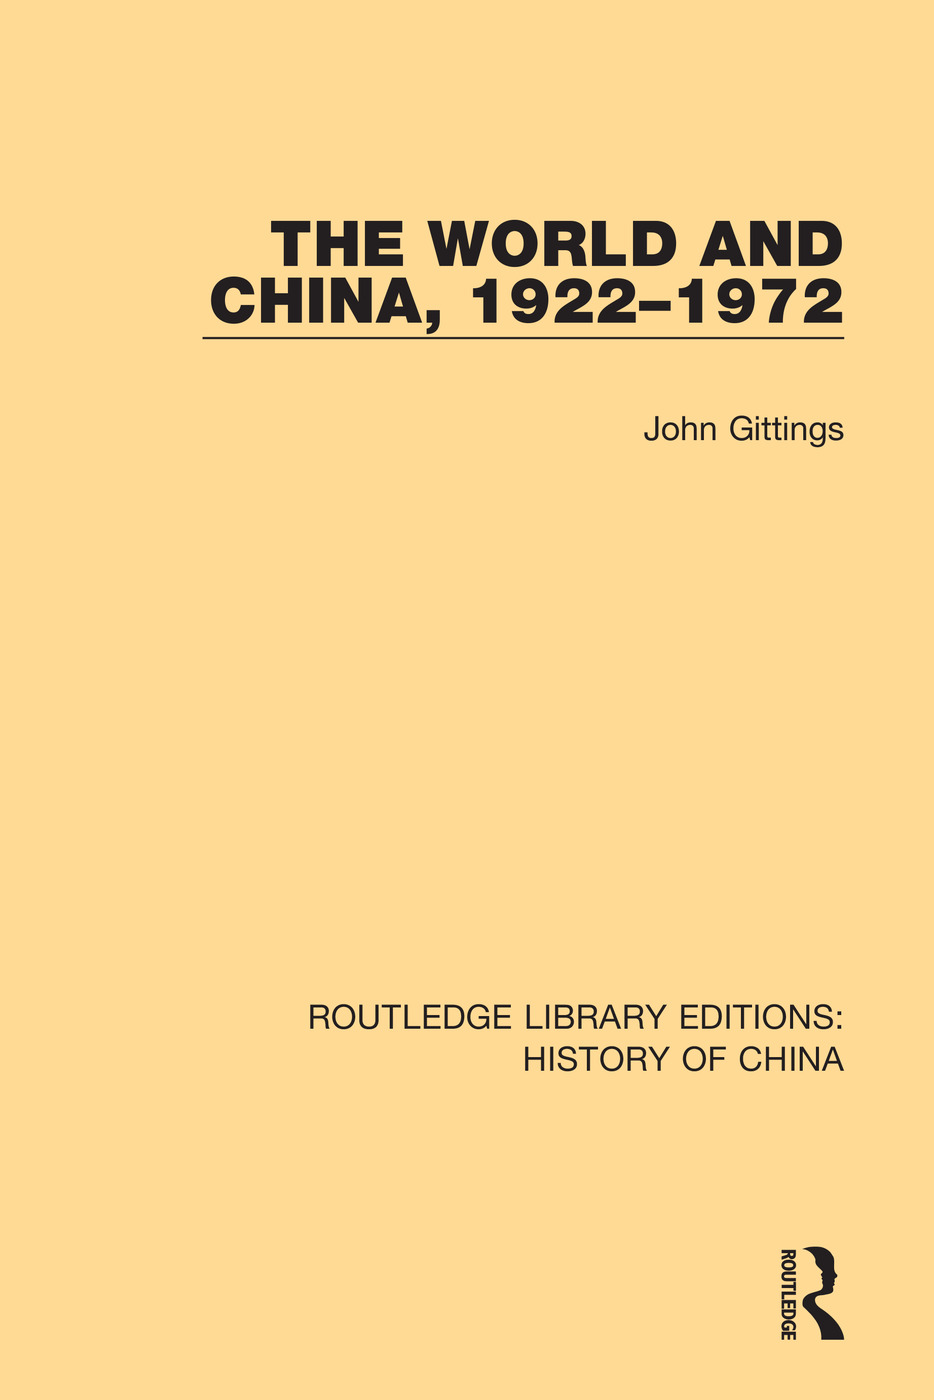 The World and China, 1922-1972 book cover